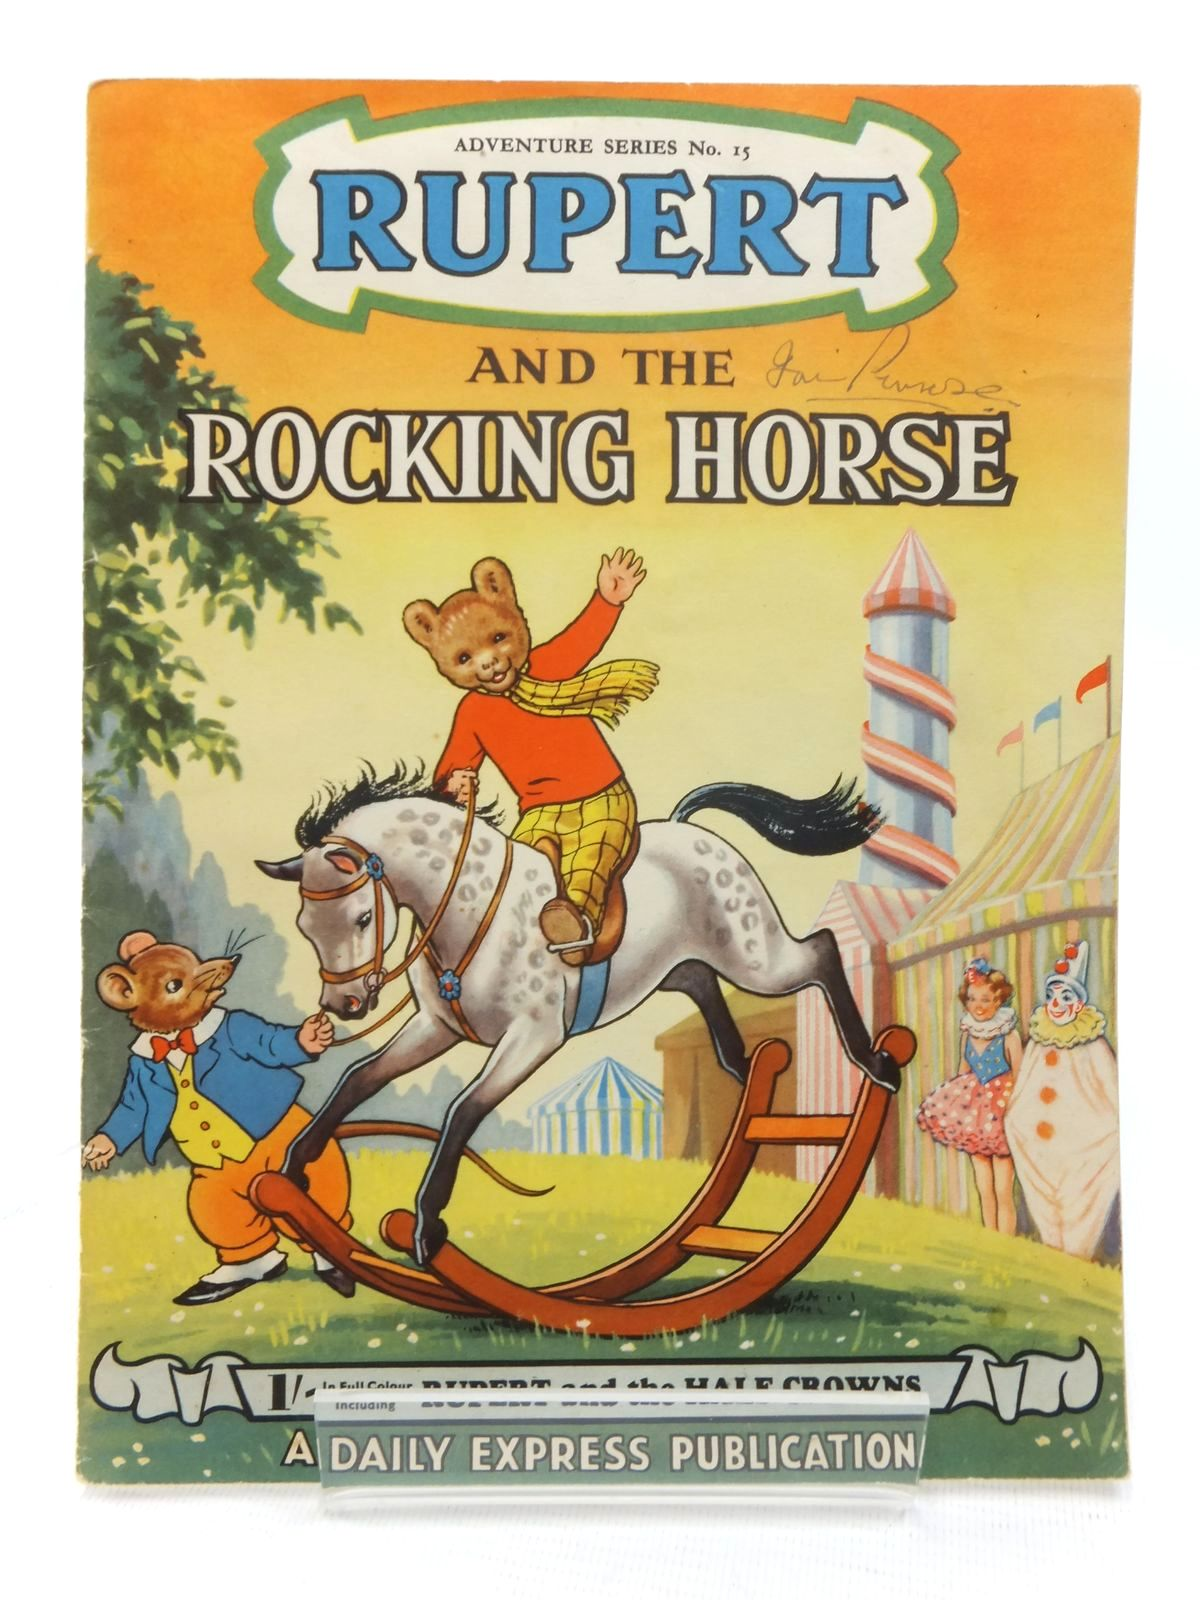 Photo of RUPERT ADVENTURE SERIES No. 15 - RUPERT AND THE ROCKING HORSE written by Bestall, Alfred illustrated by Ash, Enid published by Daily Express (STOCK CODE: 1609550)  for sale by Stella & Rose's Books